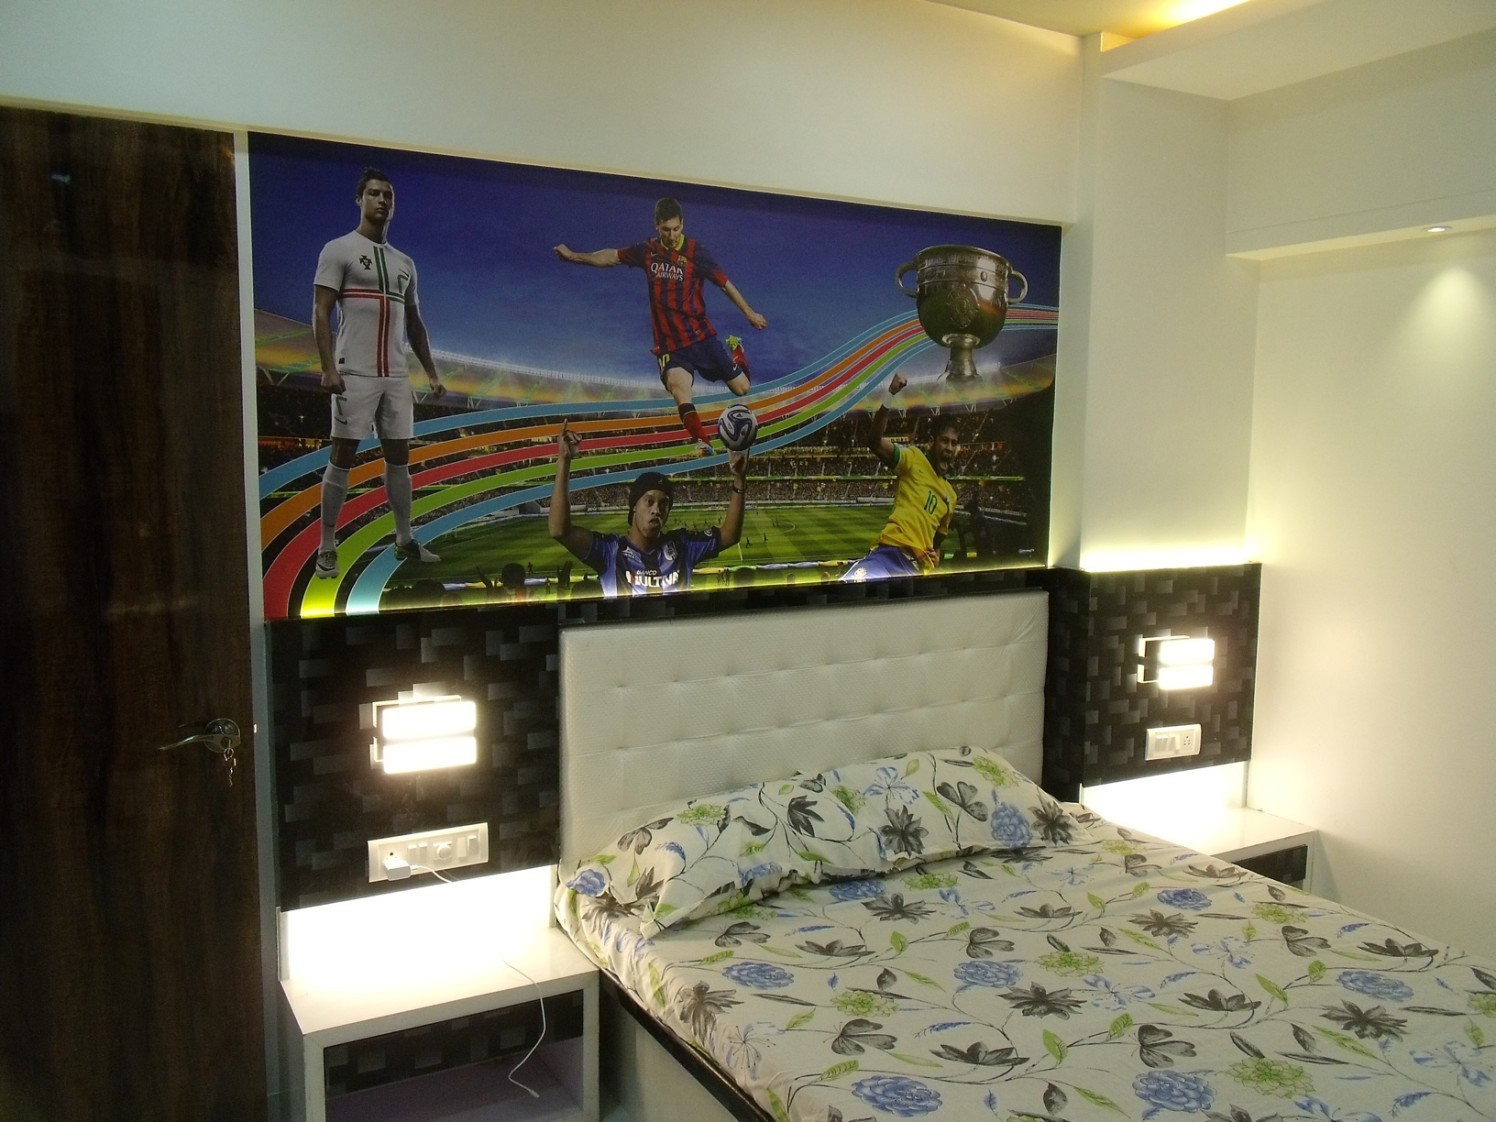 Bedroom With Sport Wall Art by Prashant Koli Bedroom Contemporary | Interior Design Photos & Ideas